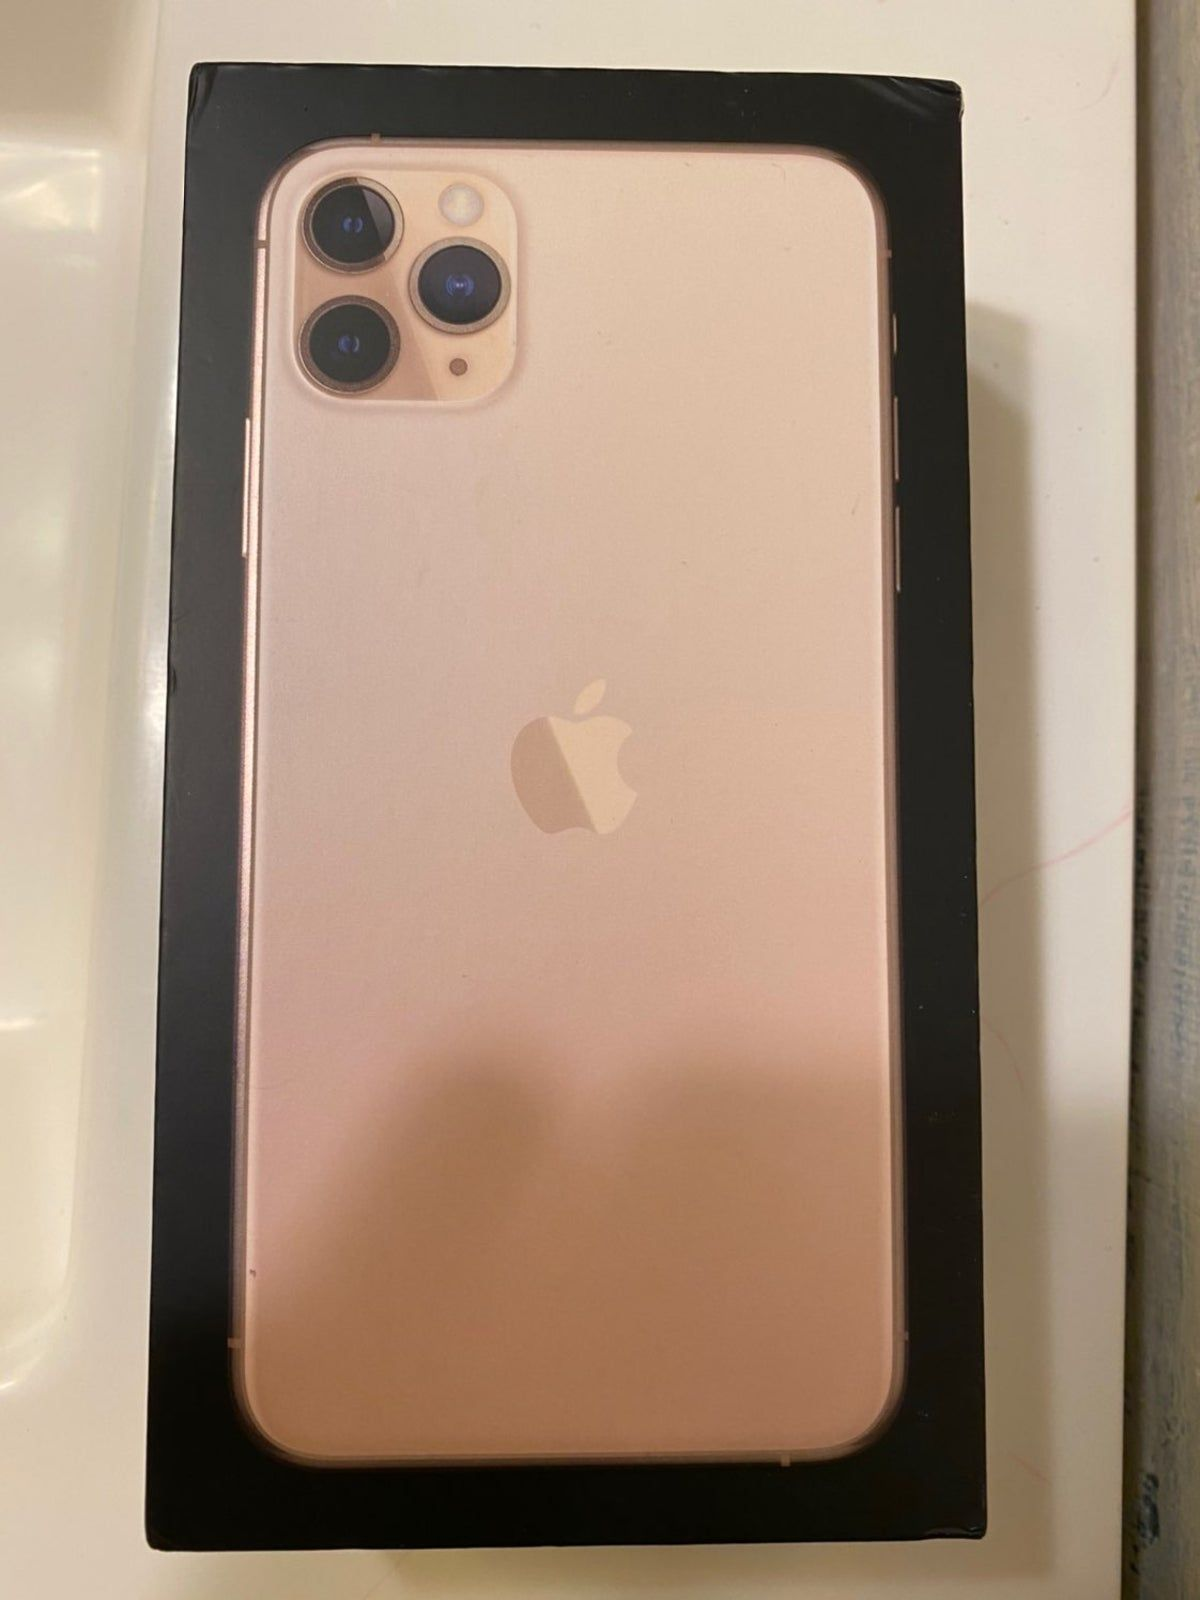 Iphone 11 Pro Max Gold Empty Box Iphone 11 Pro Max Gold Iphone Iphone 11